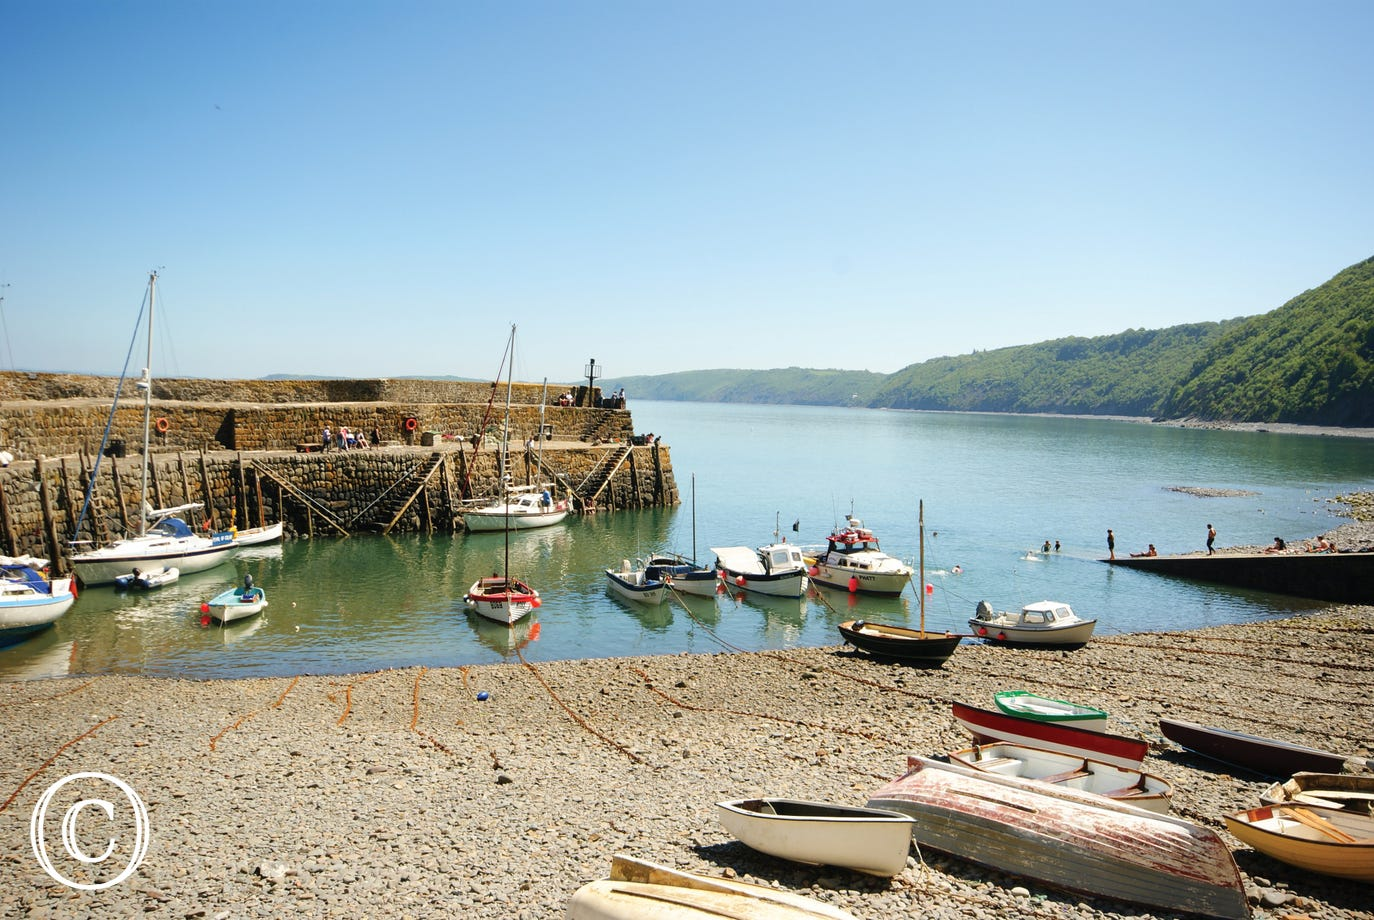 The historic fishing village of Clovelly is a short drive away and well worth a visit